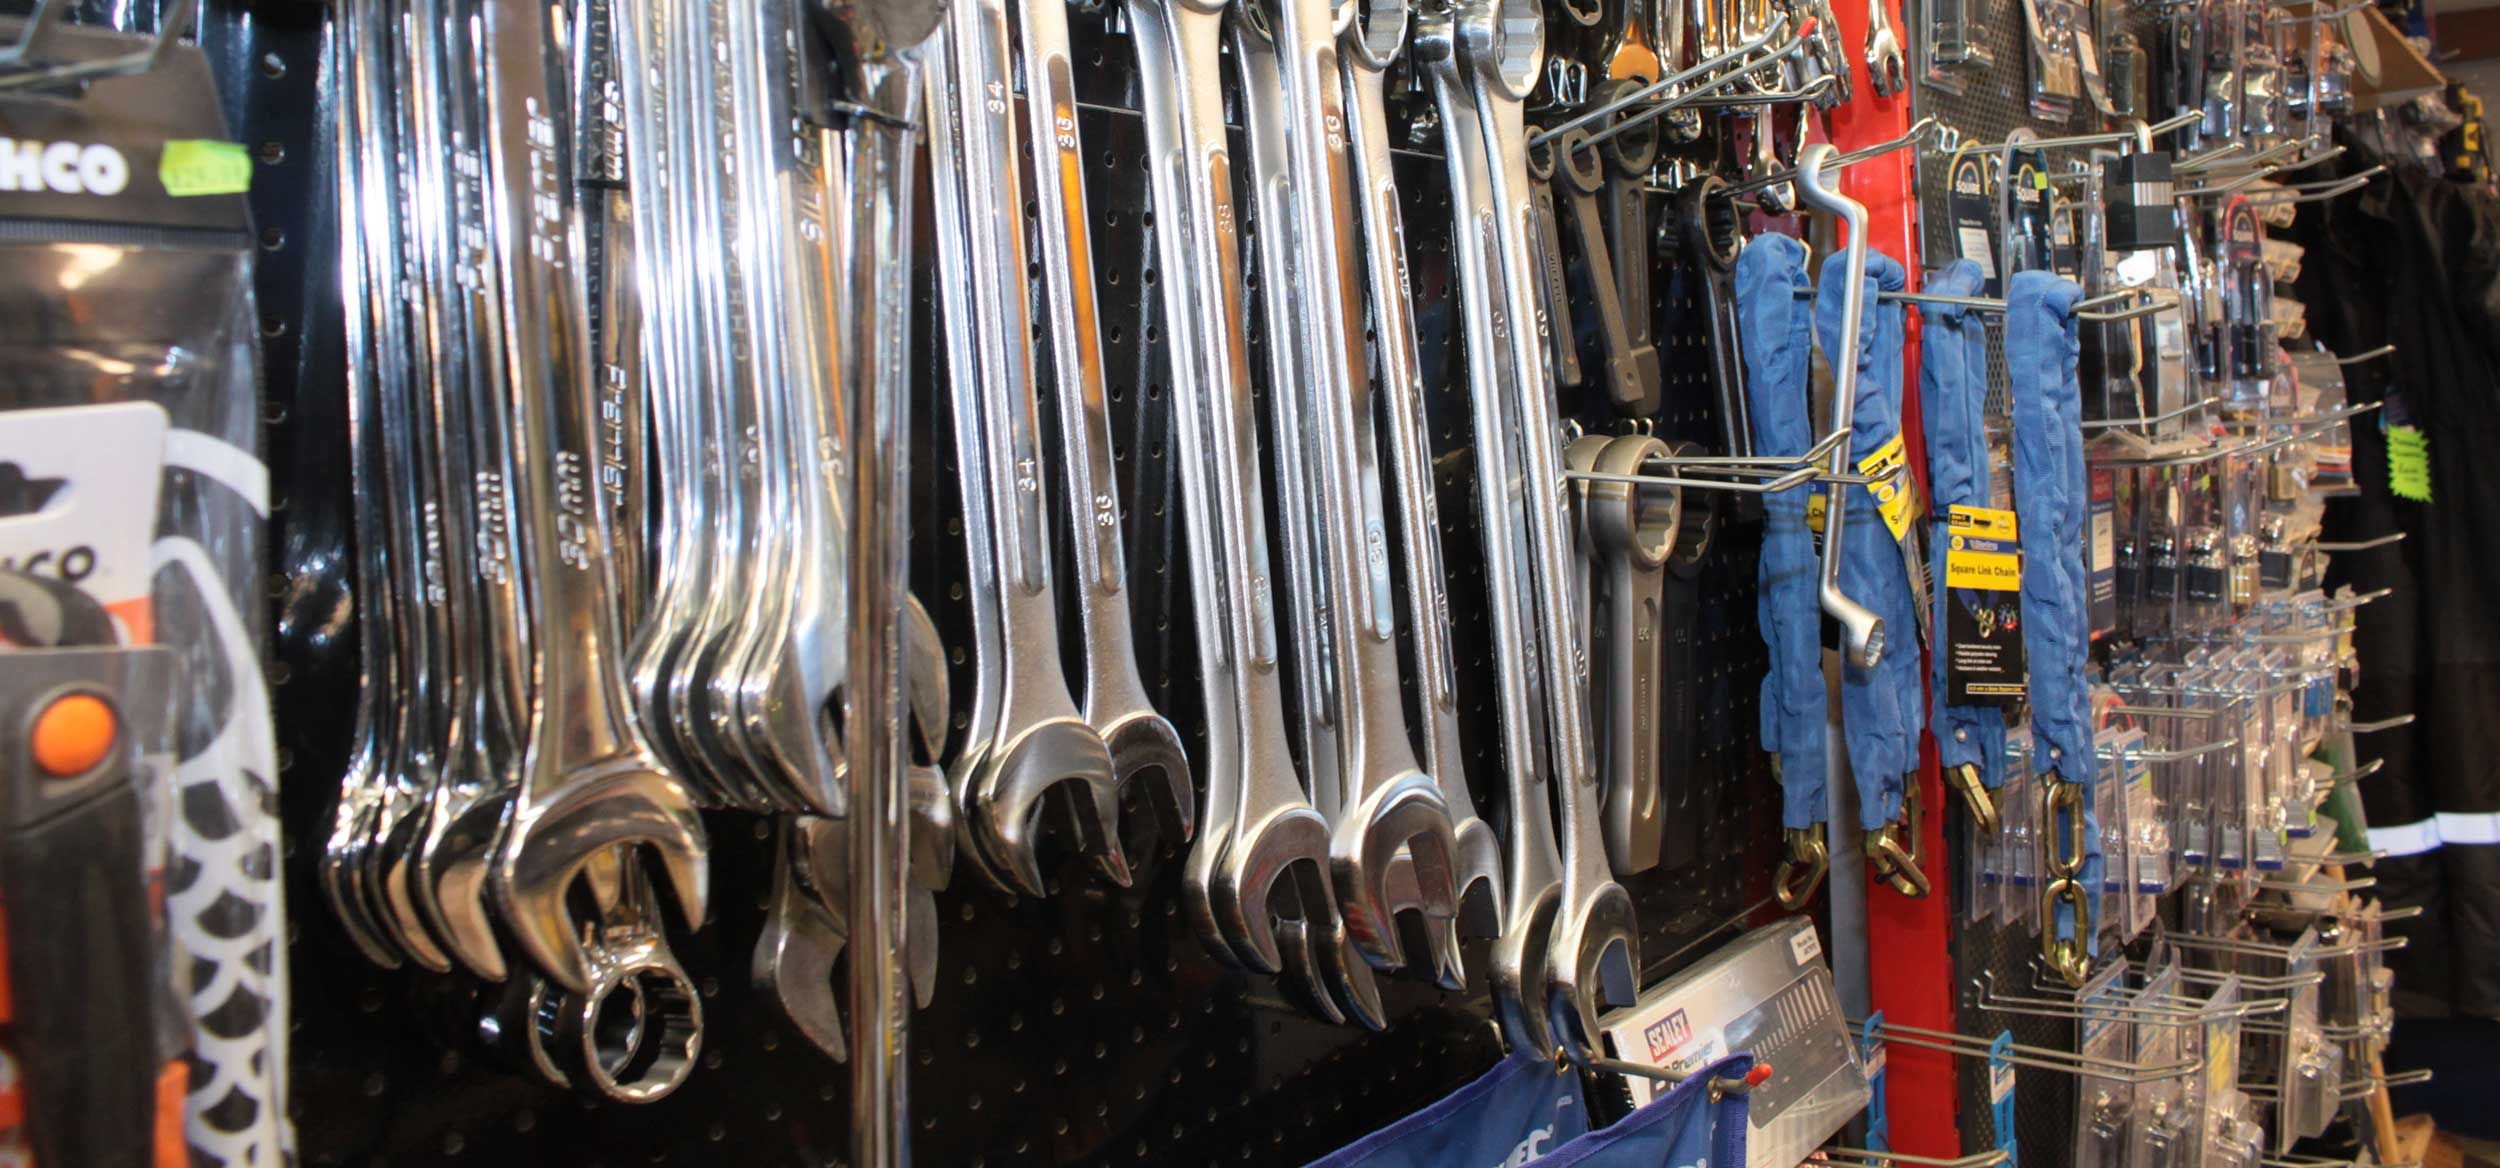 We pride ourselves on stocking an extensive range of tools.